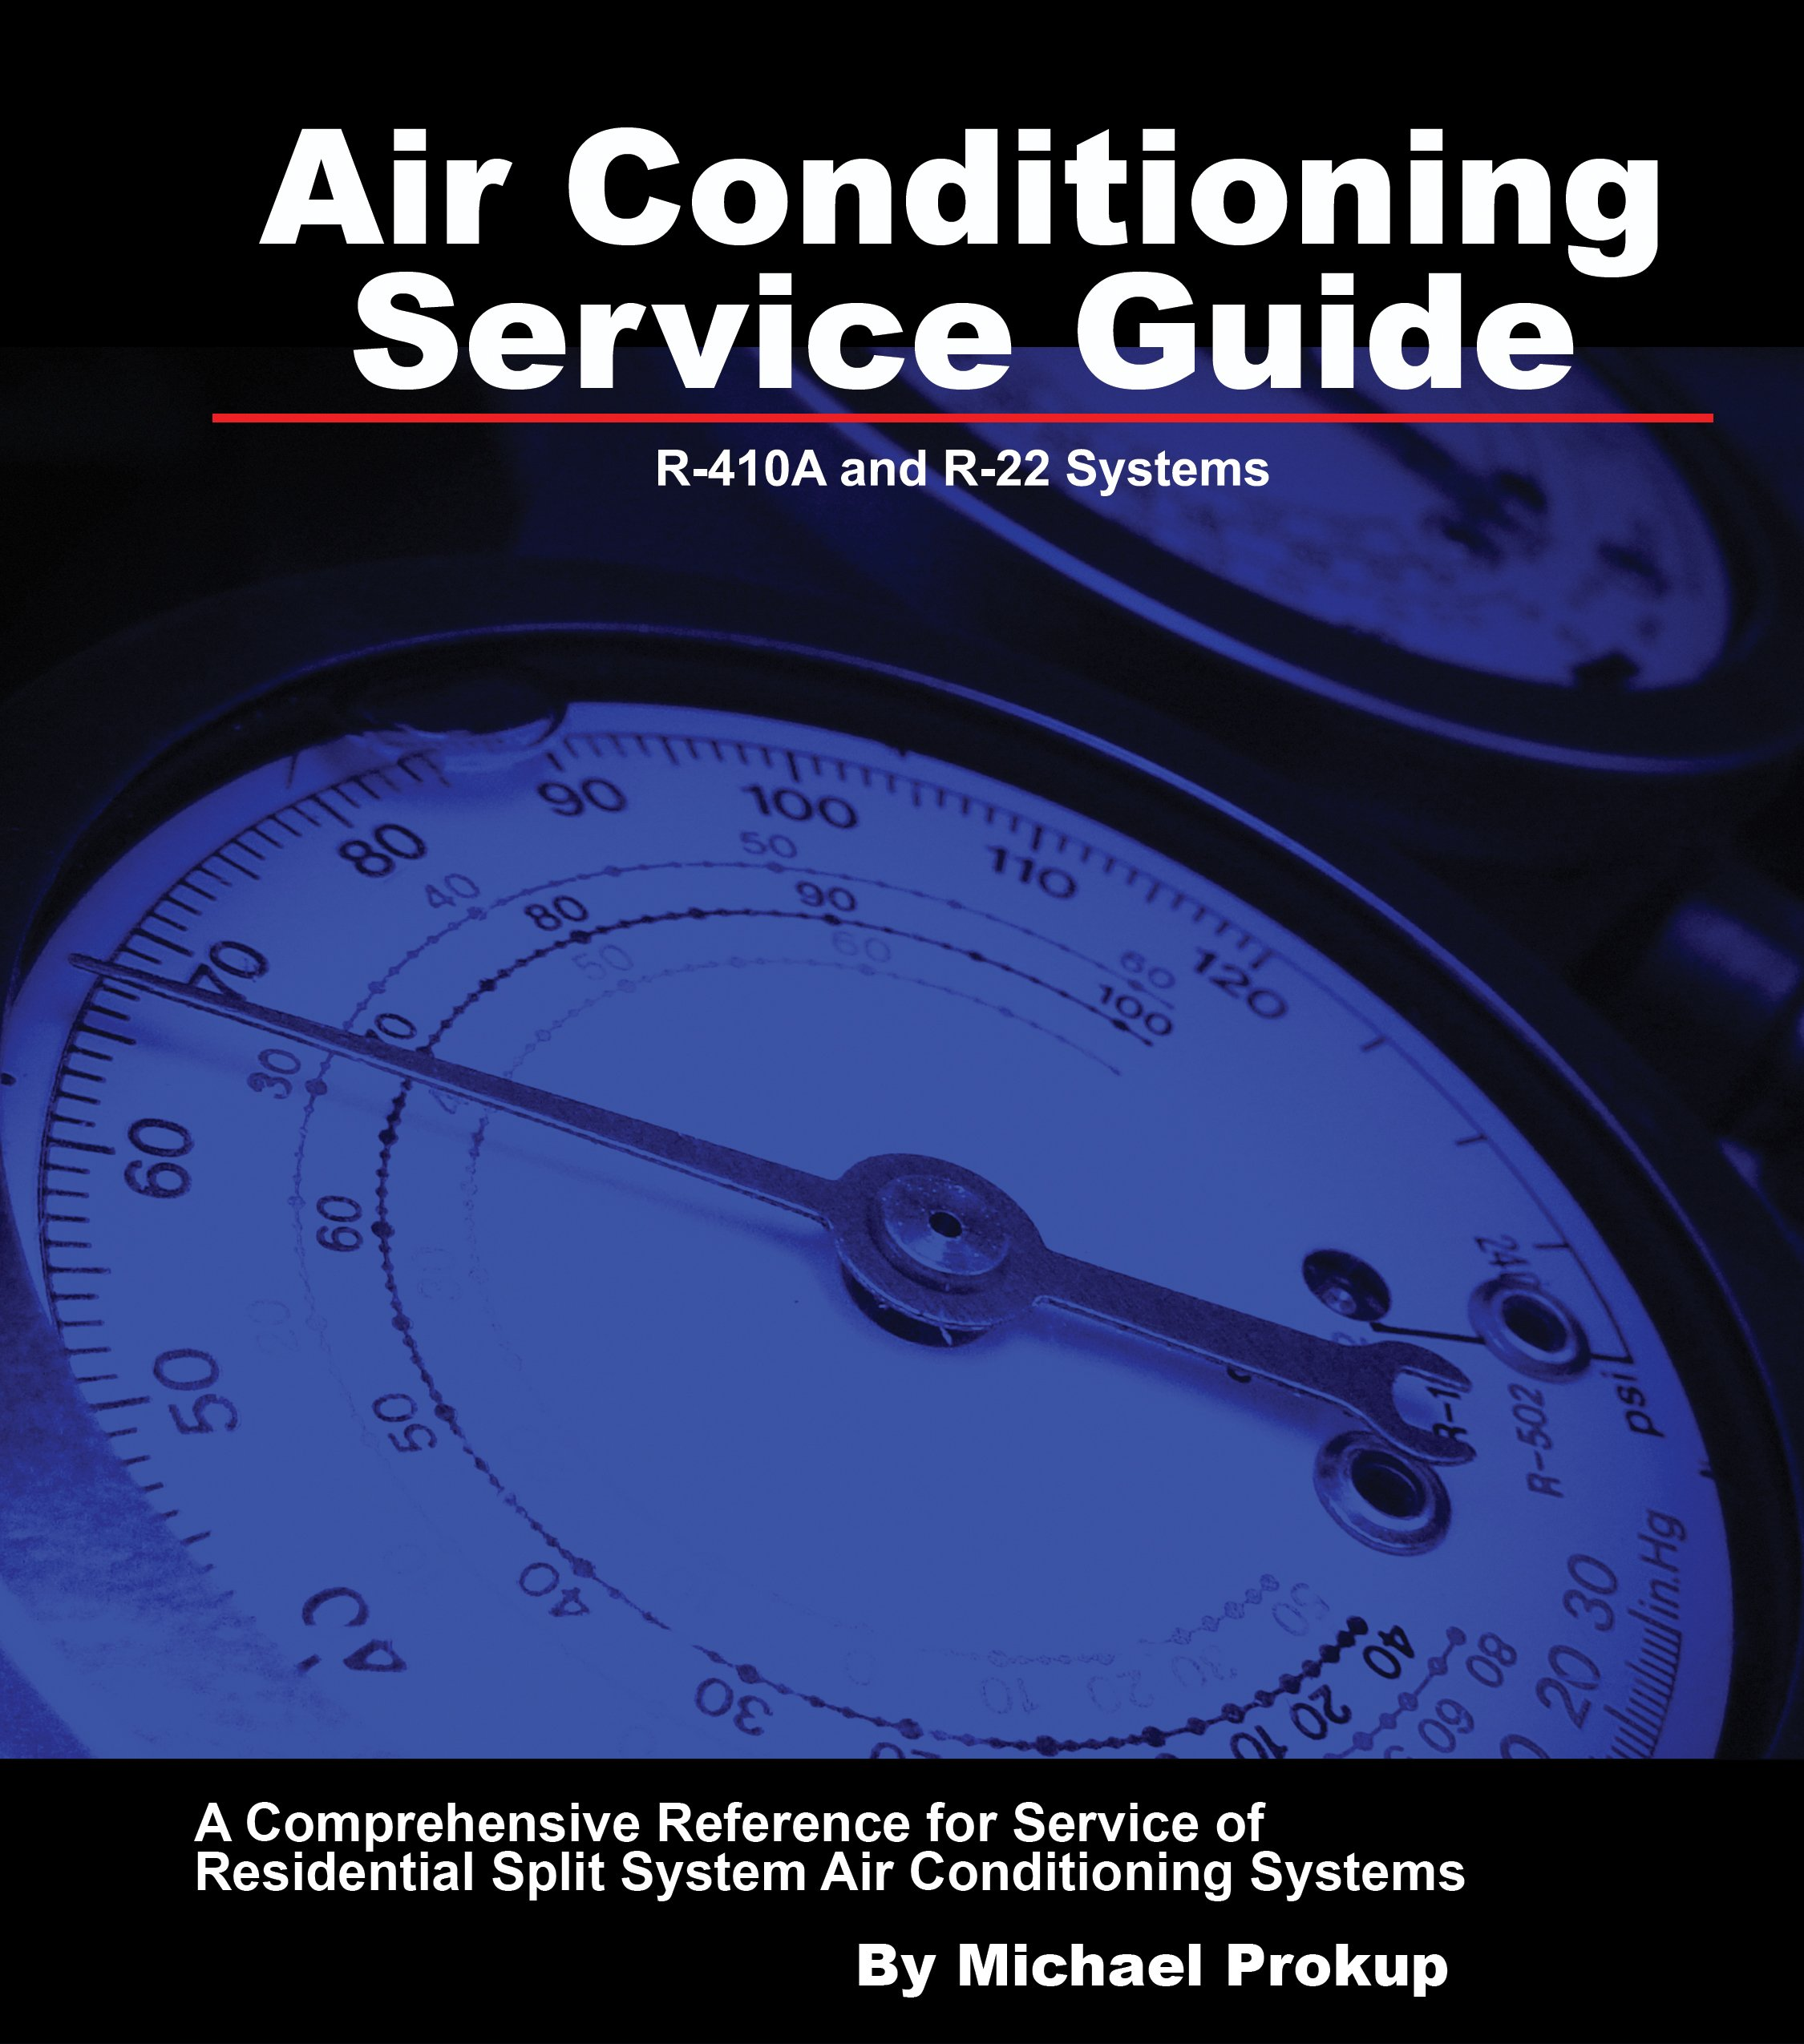 air conditioning service guide michael prokup 9780615924724 rh amazon com panasonic air conditioner service guide air conditioning service guide book